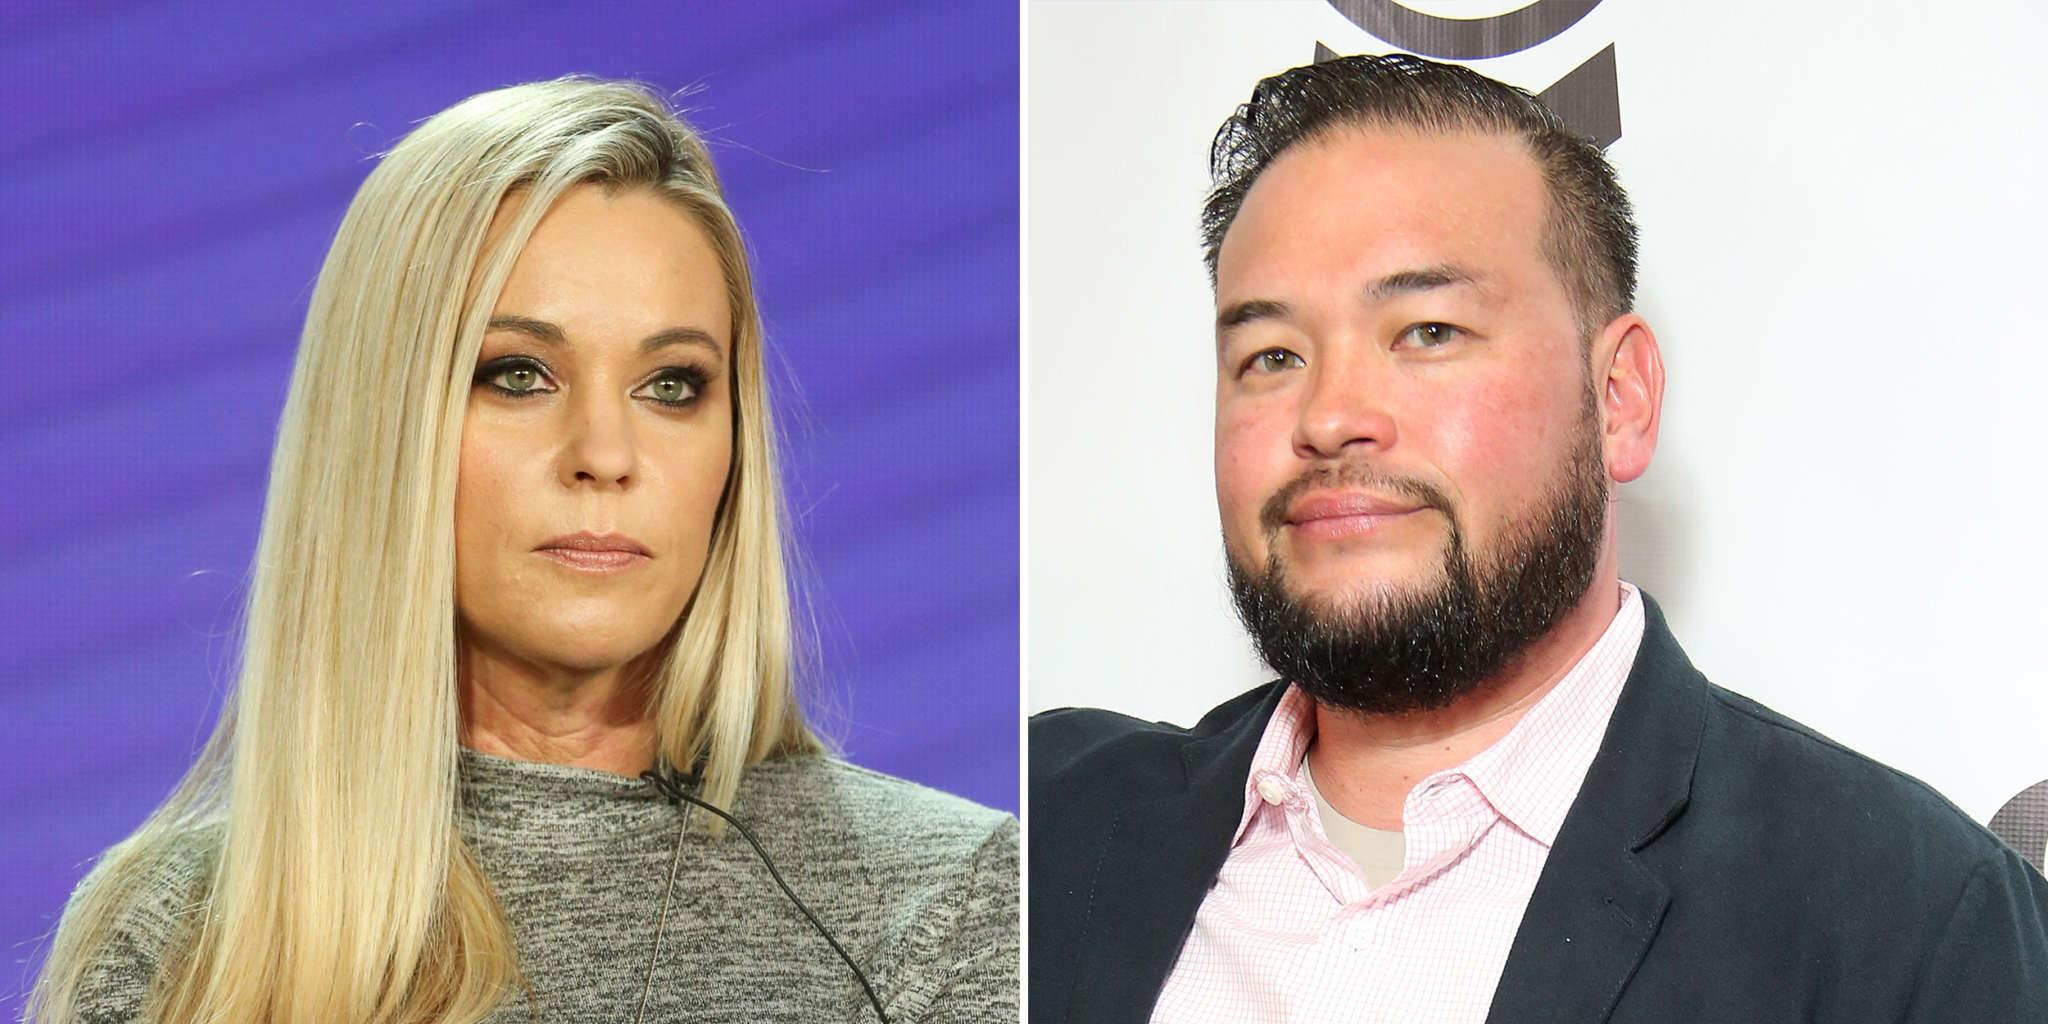 Kate Gosselin Says Former Husband Jon Is Abusing Their Son Collin And Confirms He's Being Investigated!